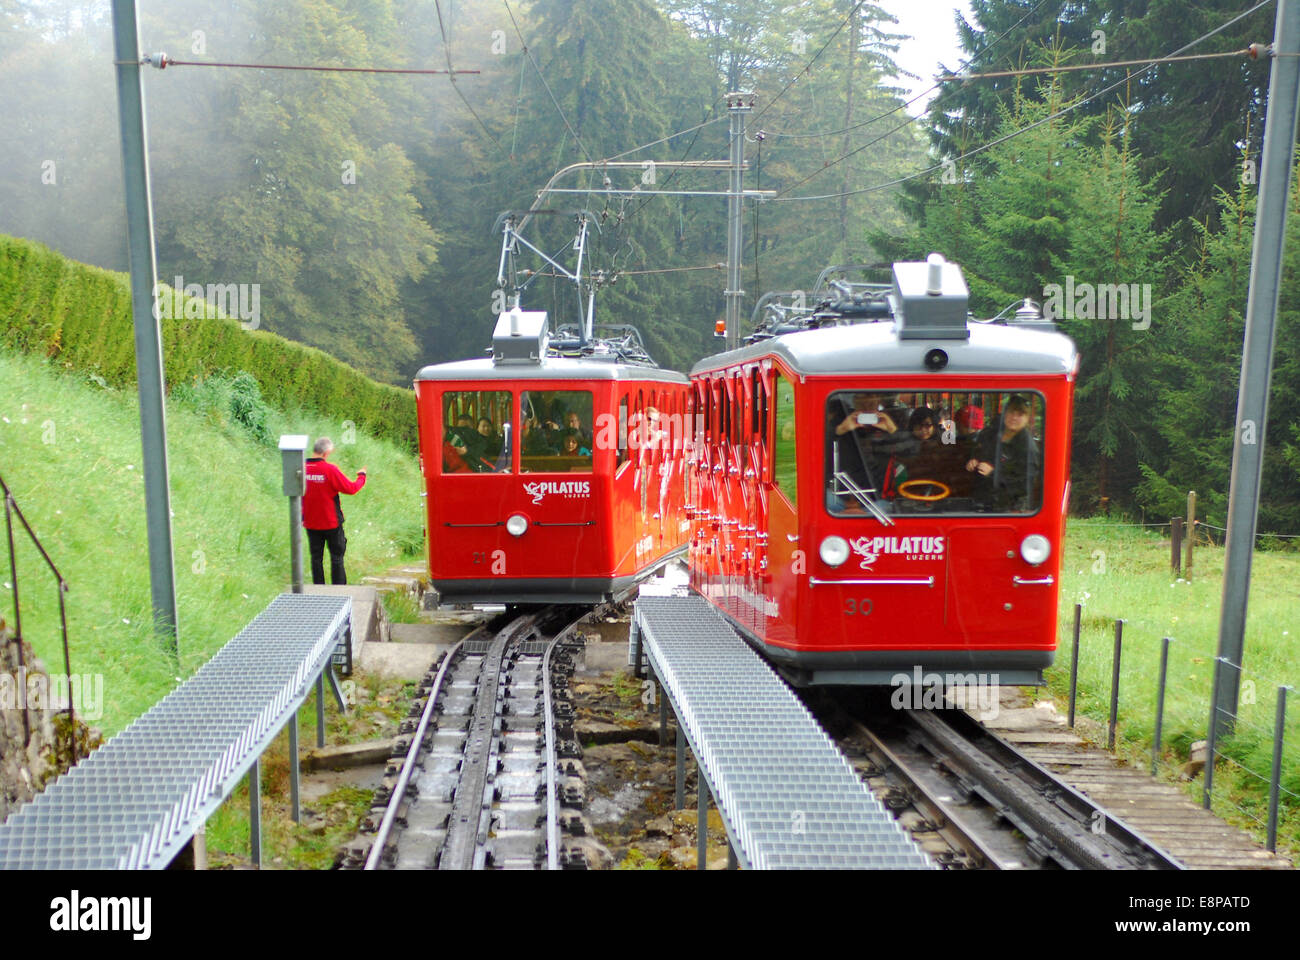 Switzerland. Shift station of the cog railway for mountain hiker. Steepest cog railwayof the world (48% gradient). - Stock Image